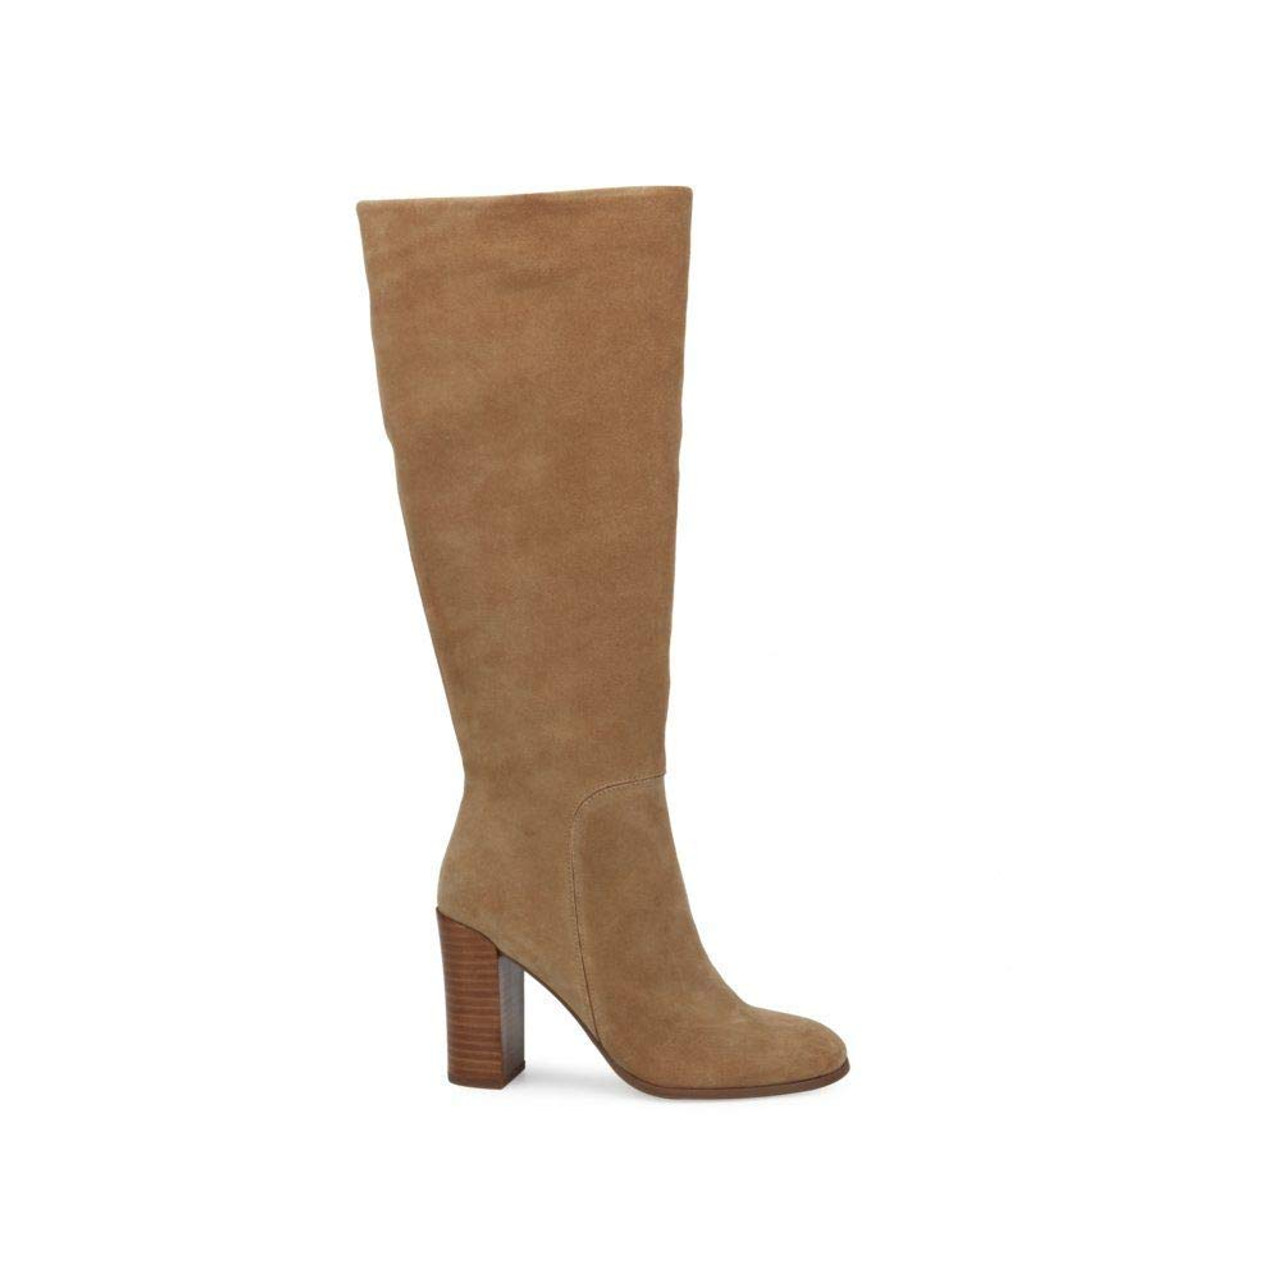 7eafdf01918 ... Kenneth Cole New York Womens Justin Leather Closed Toe Knee High  Fashion Boots~pp-. On Sale ~